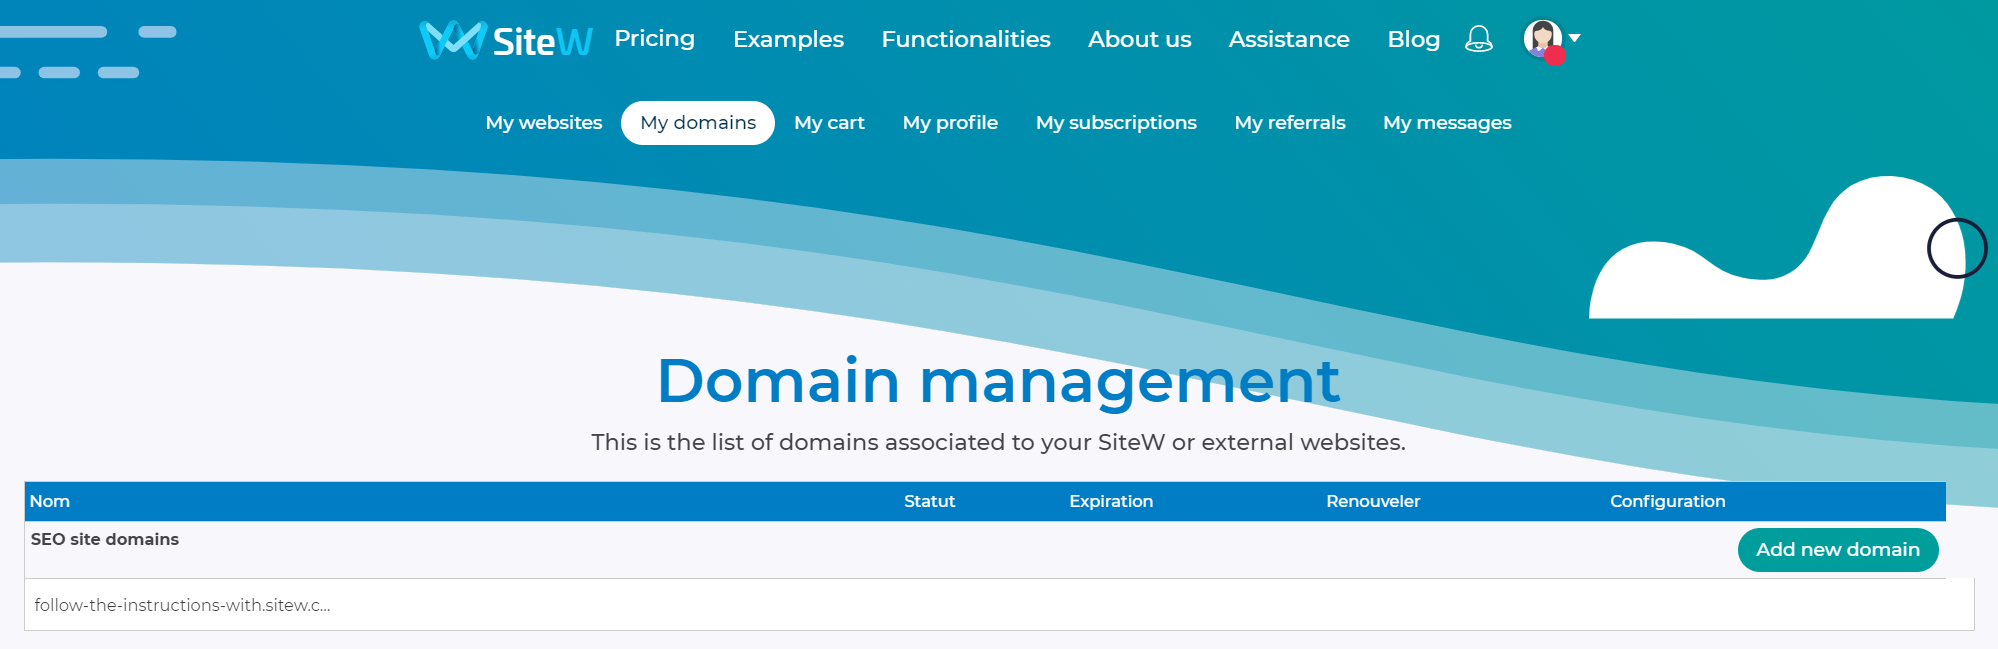 booking a domain name with sitew